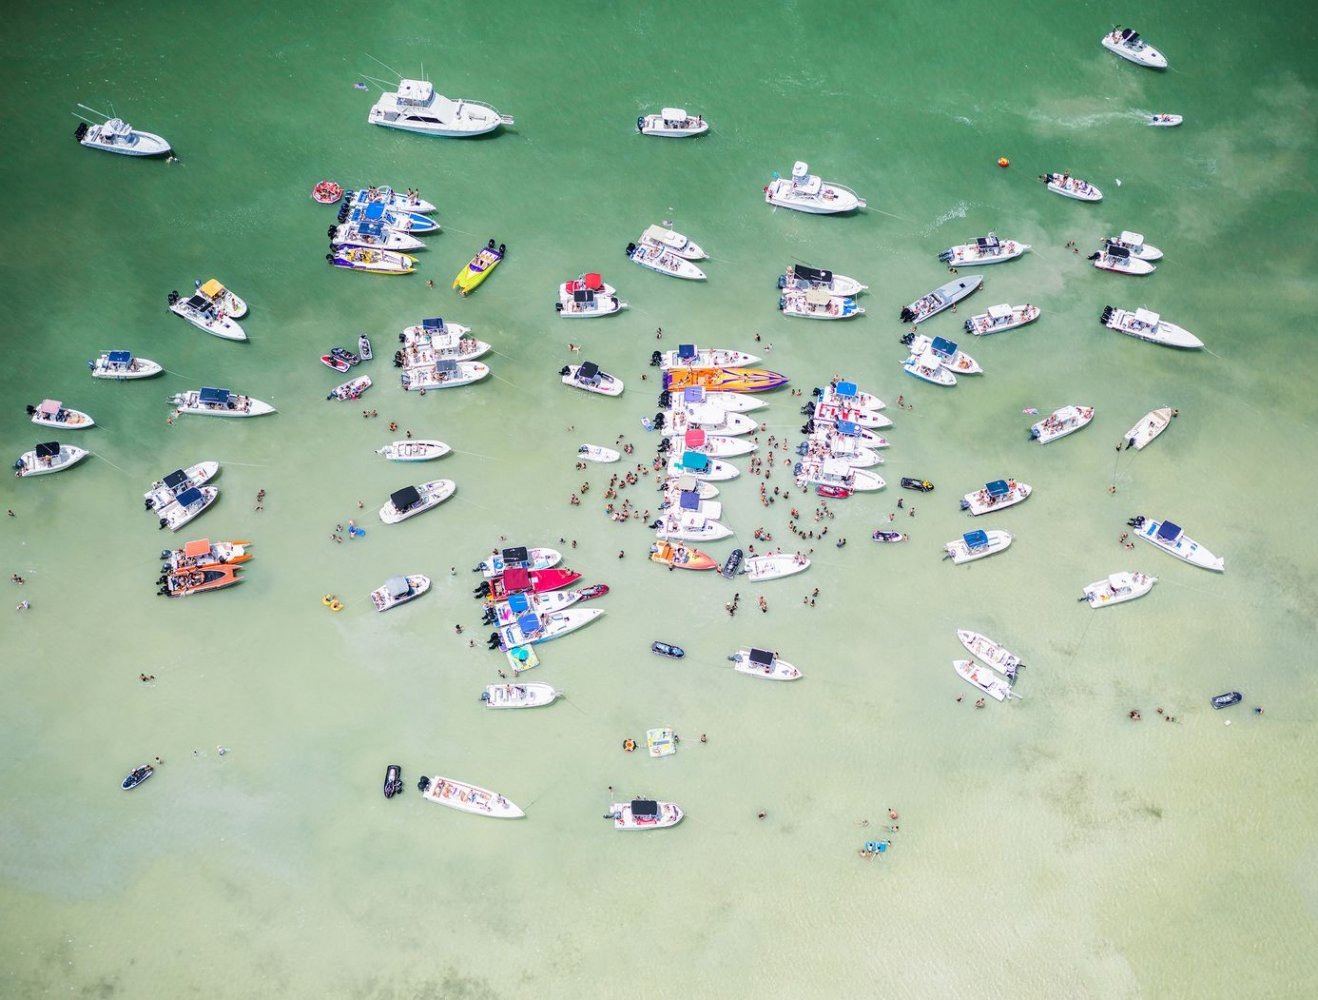 miami-beach-from-above-antoine-rose-06